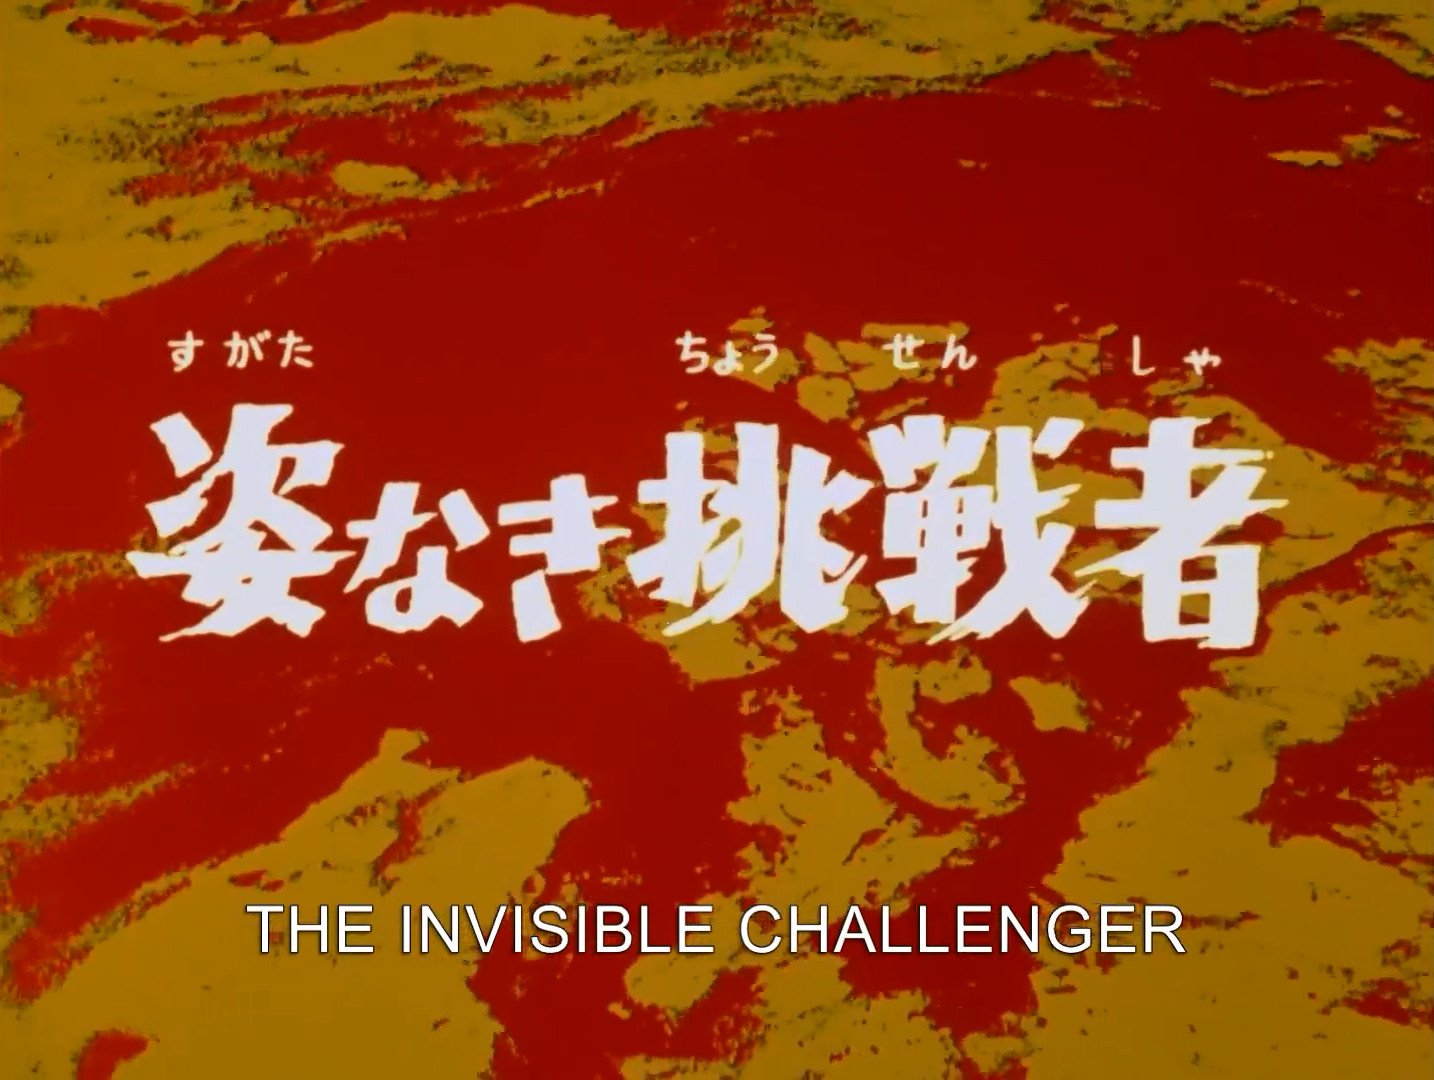 The Invisible Challenger